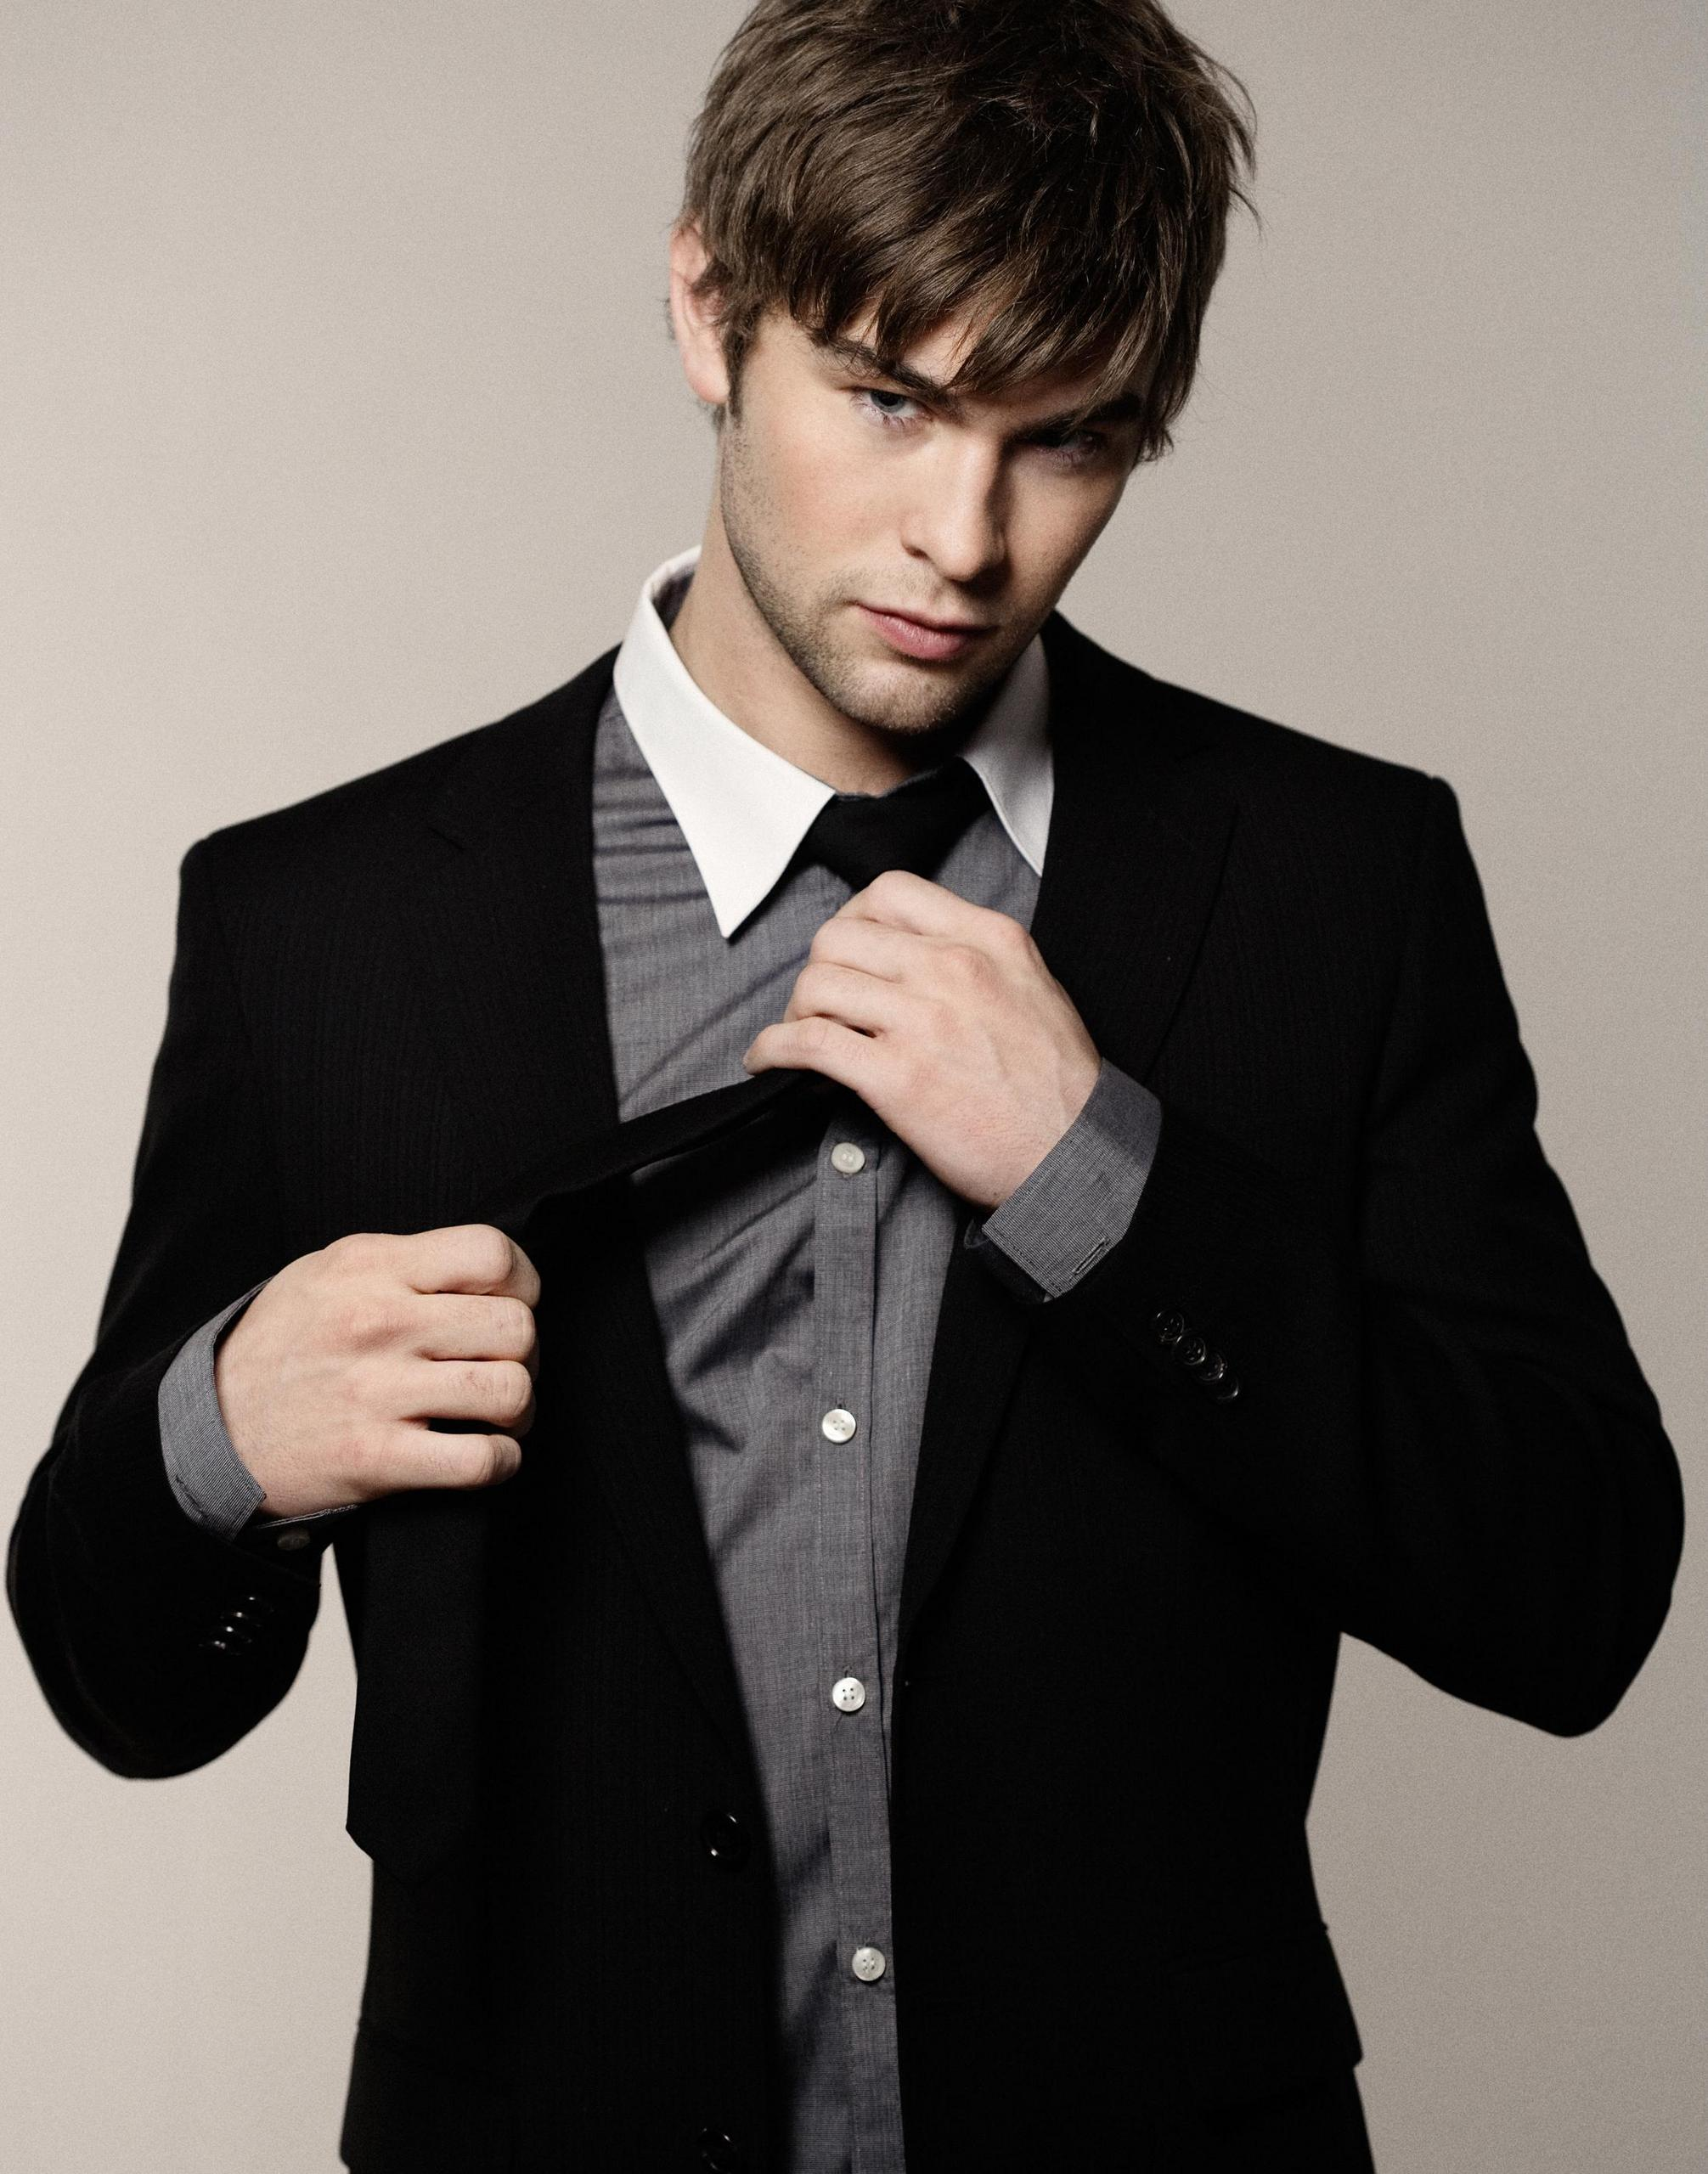 Chace Crawford - Chace Crawford Photo (7424897) - Fanpop